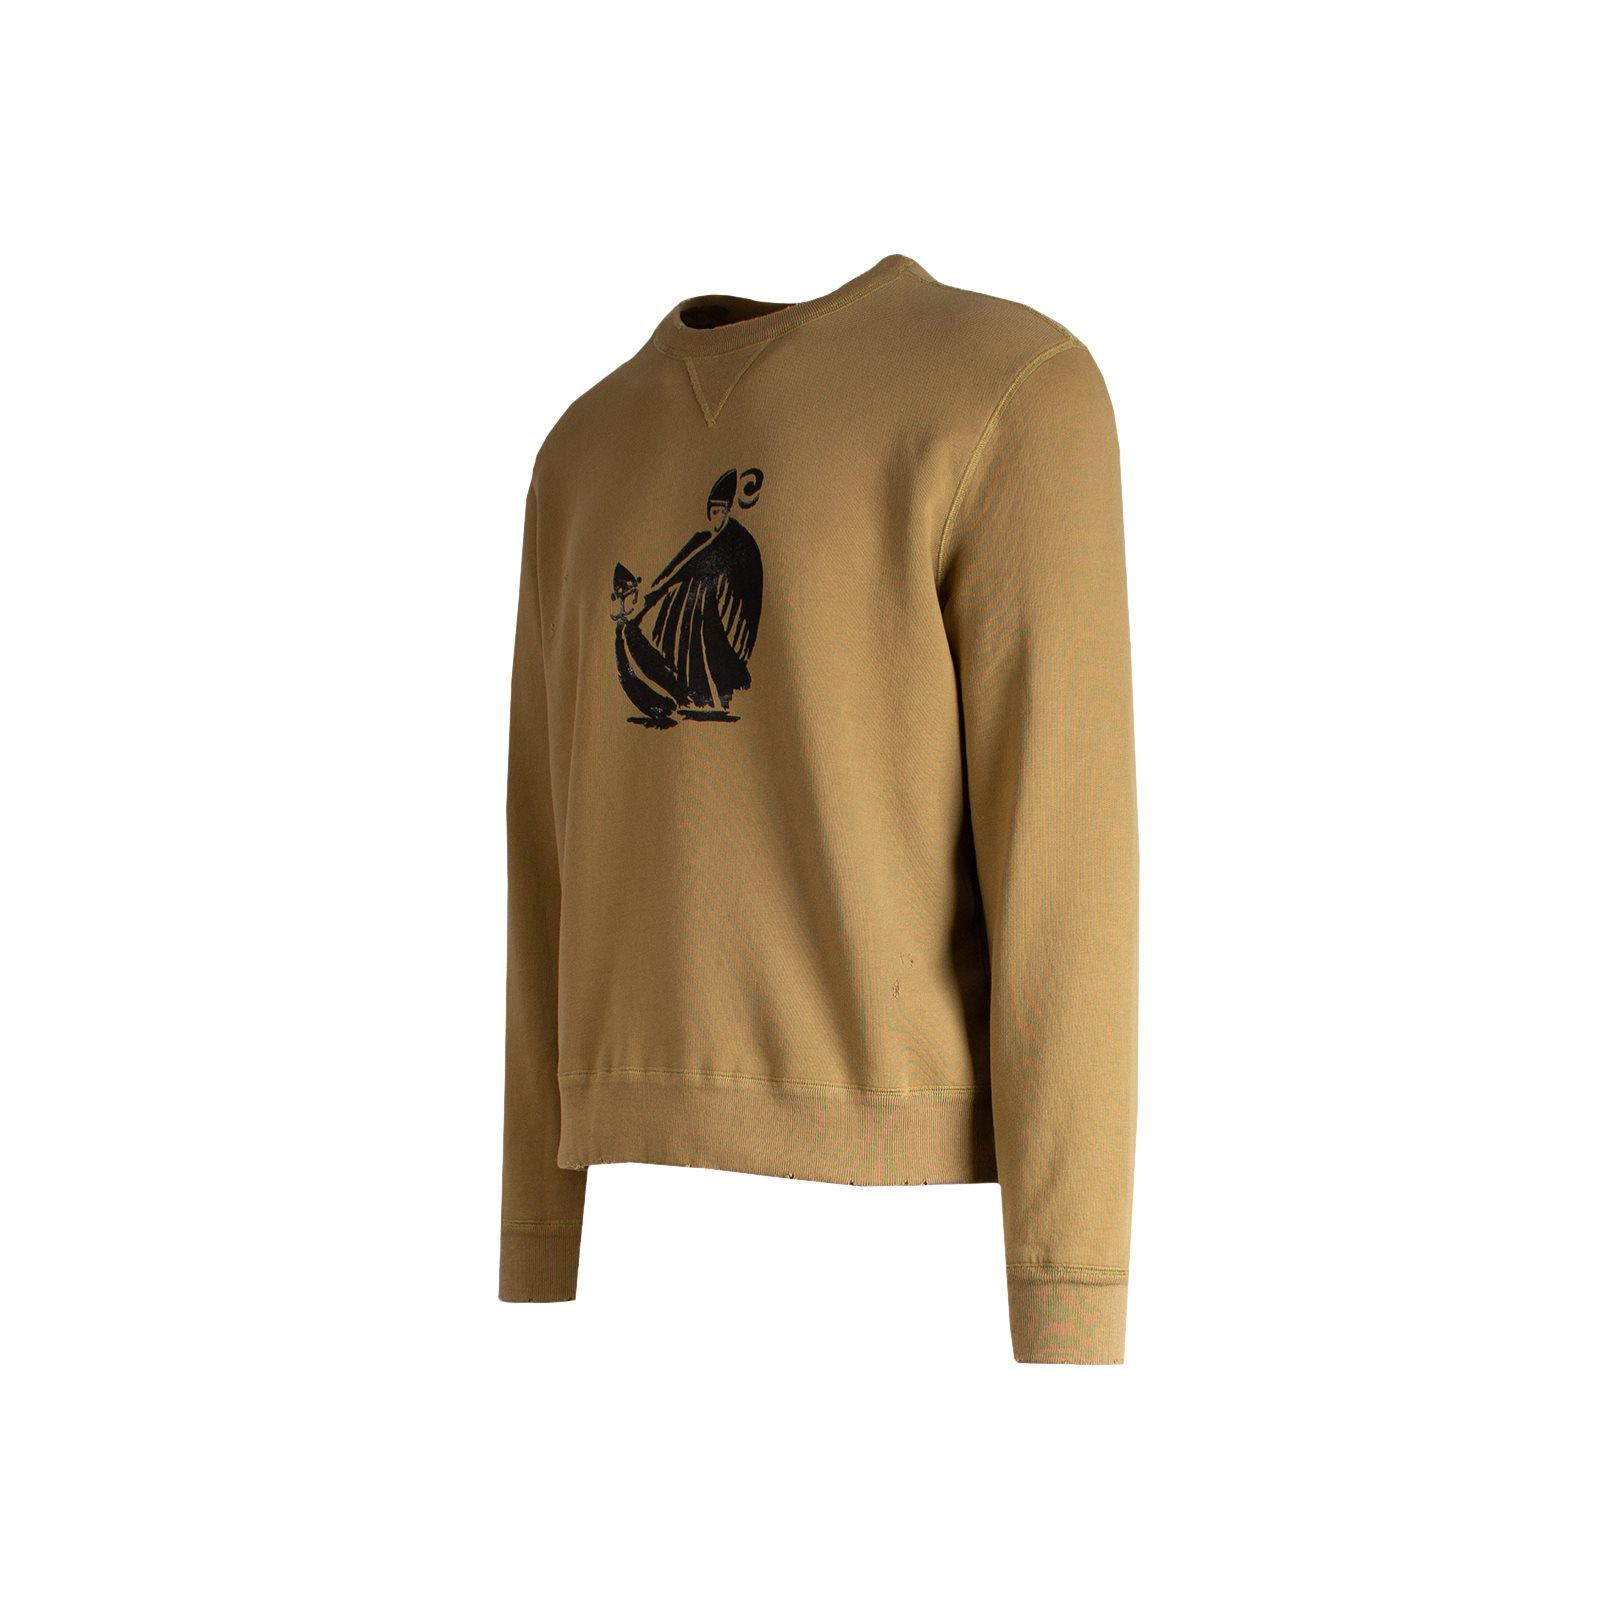 Lanvin Paris Sweater 2